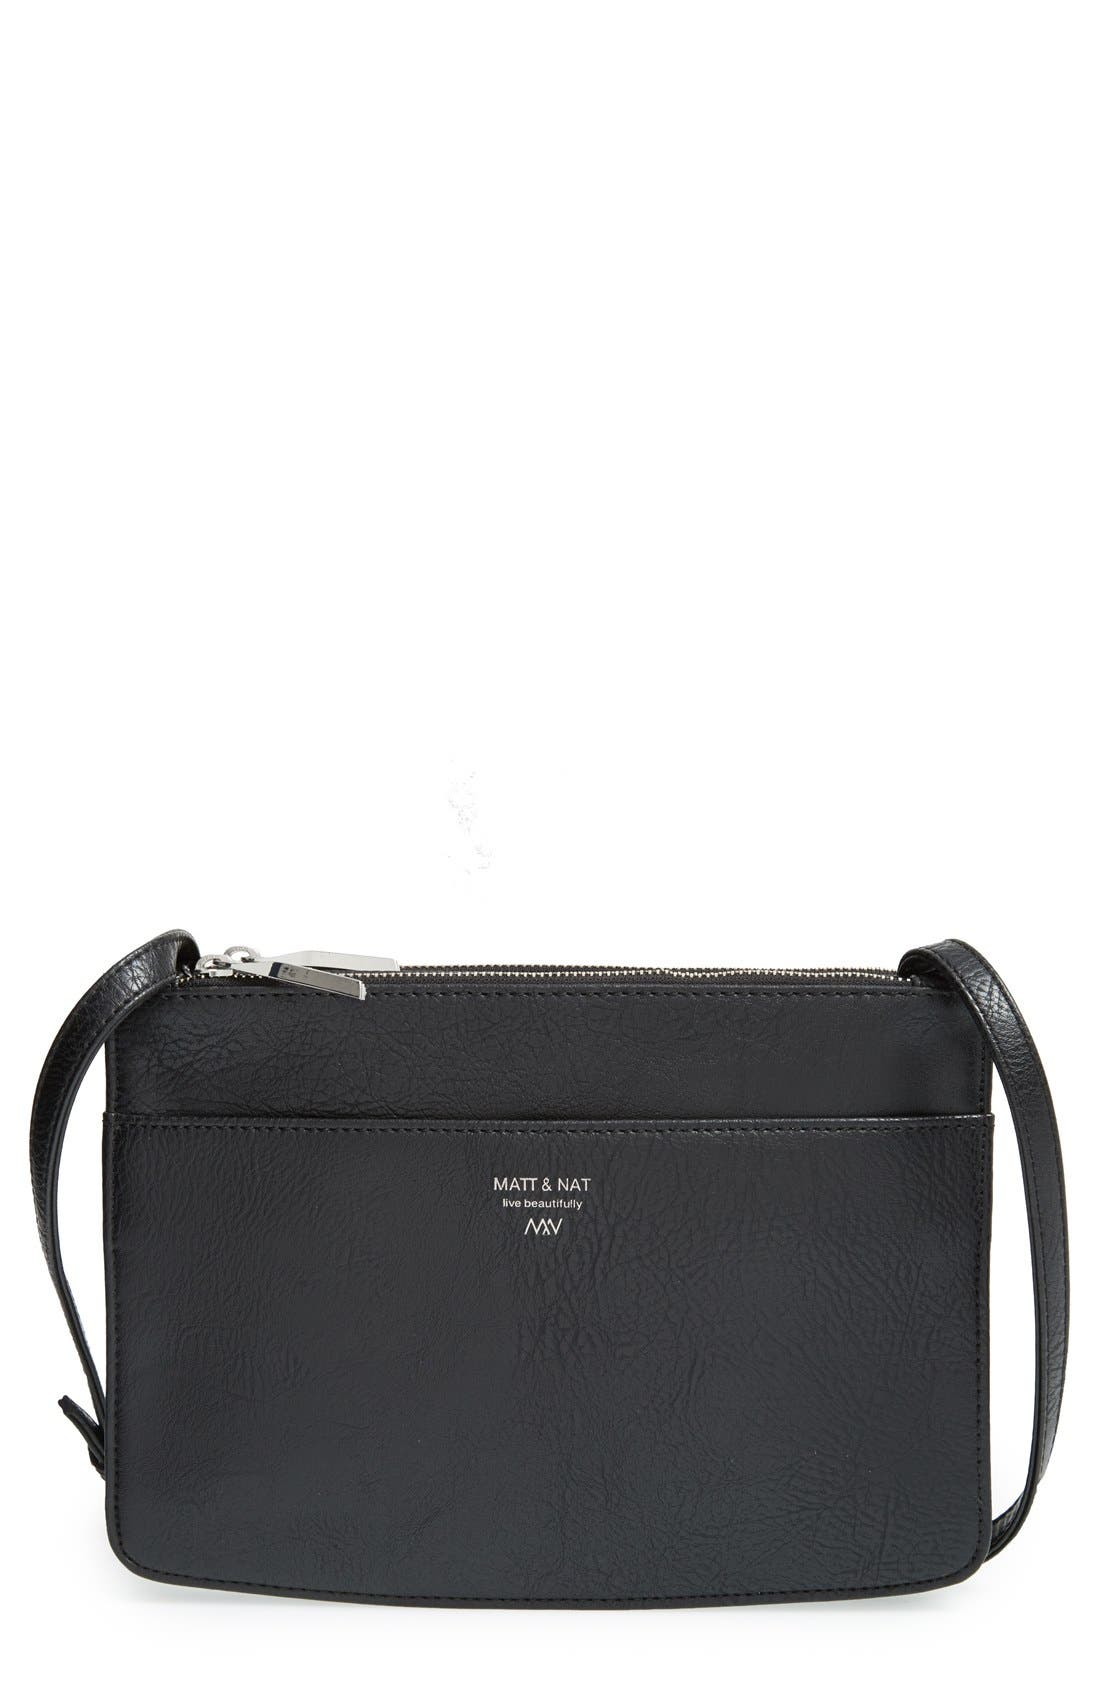 Main Image - Matt & Nat 'Gil' Vegan Leather Crossbody Bag